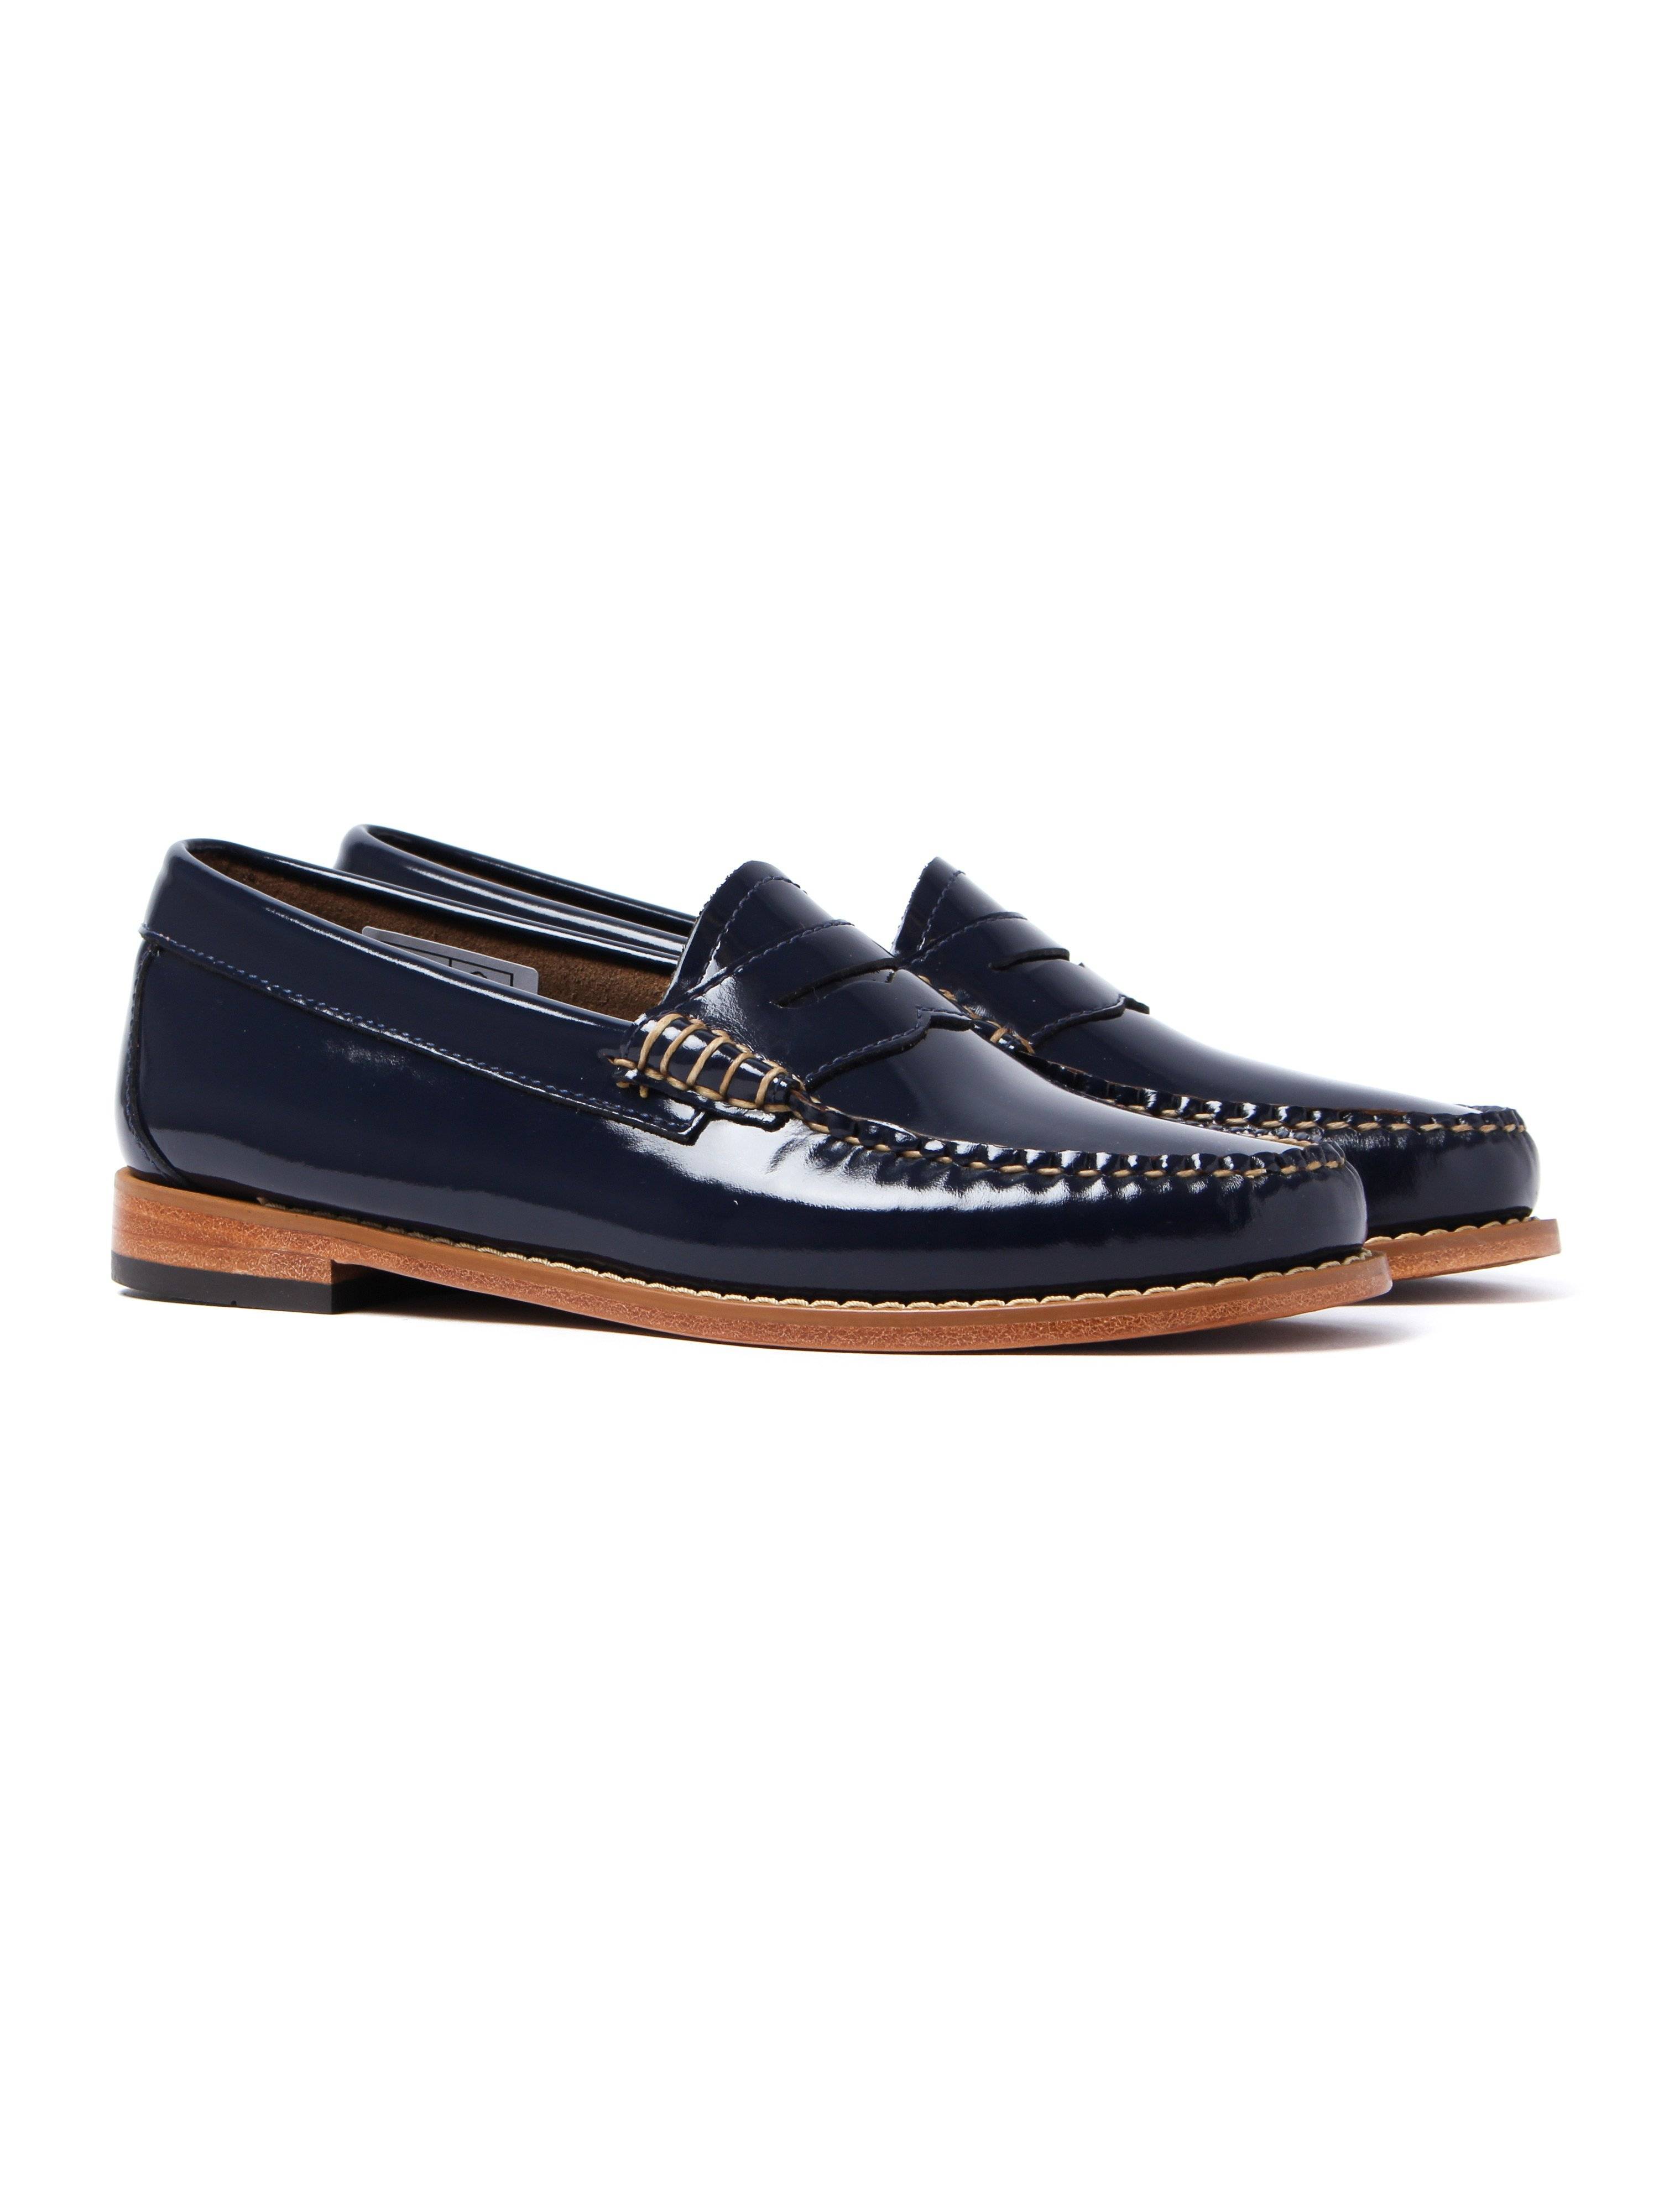 G.H. Bass Women's Weejun Penny Wheel Loafer - Deep Navy Patent Leather